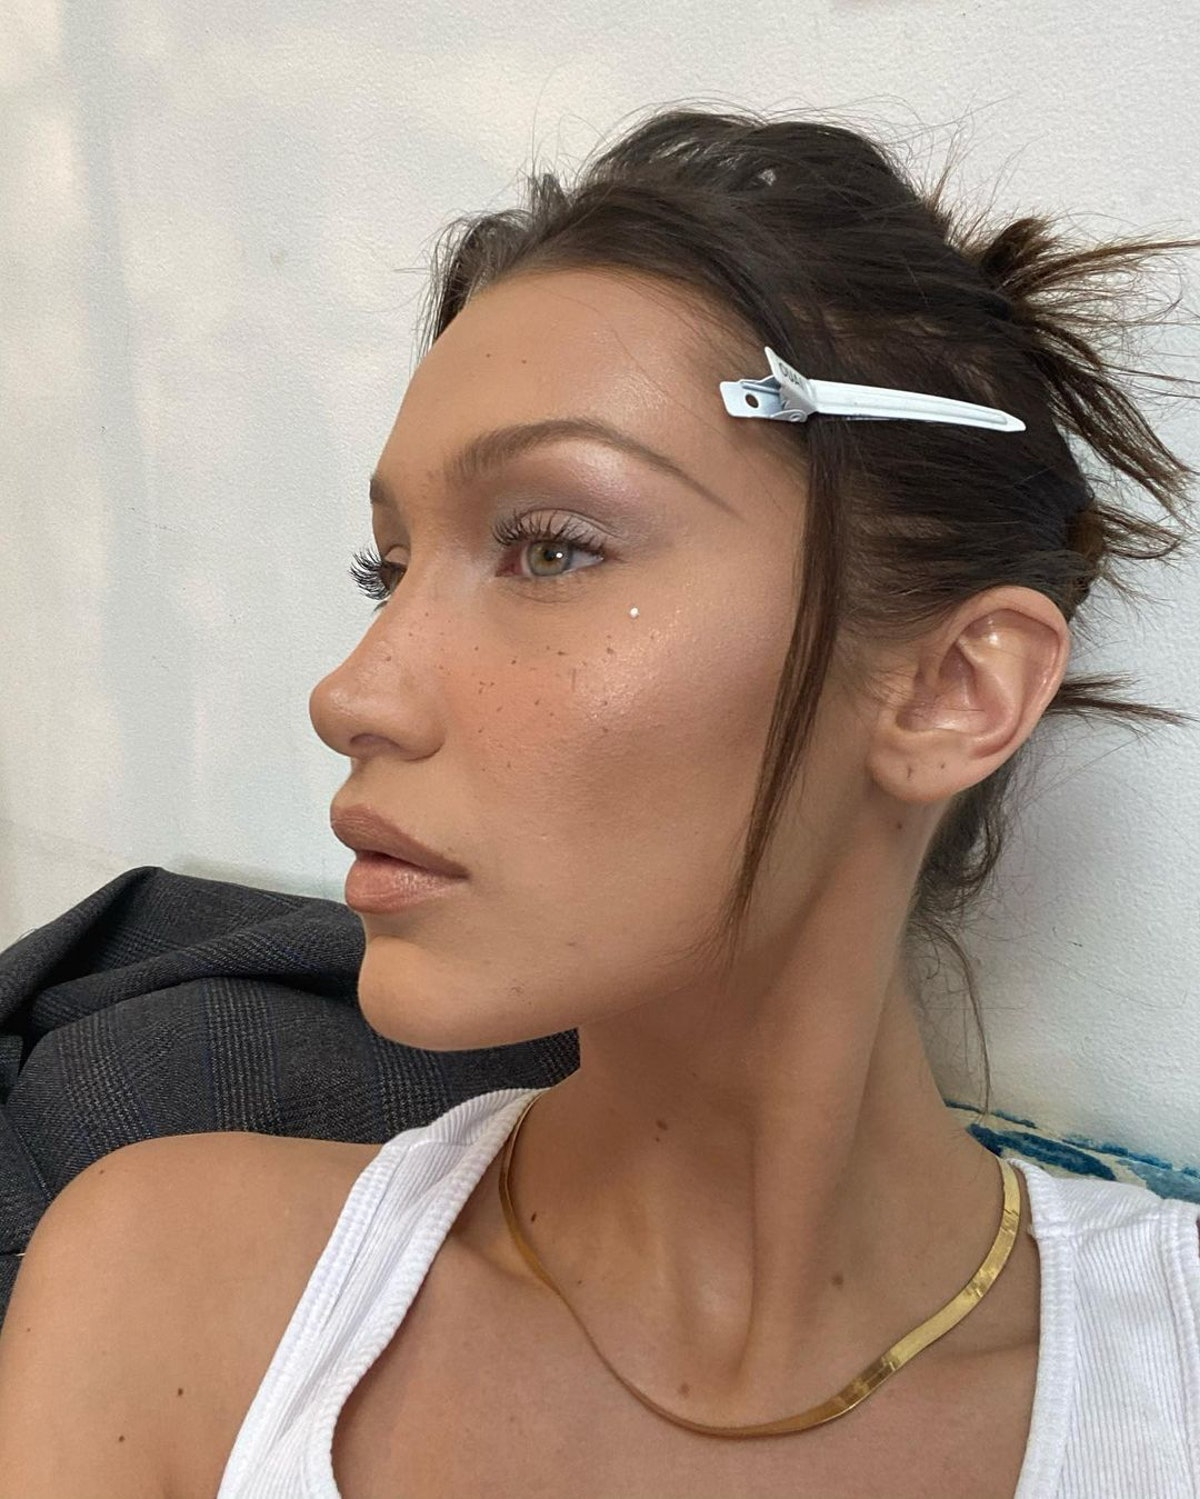 Hadid's pastel makeup and hair clip are very '90s.